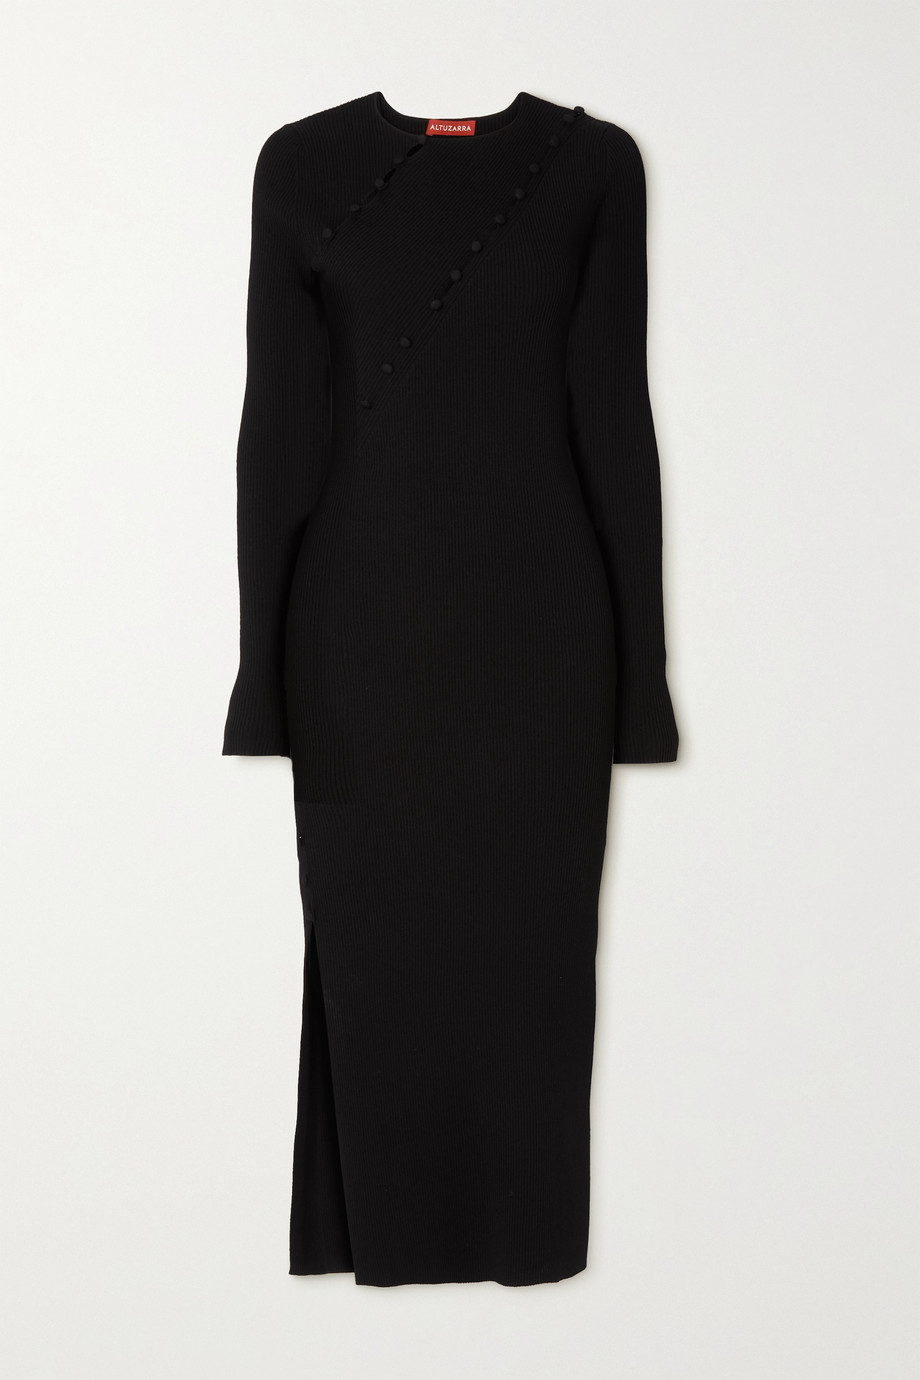 Altuzarra Evelyn button-embellished cutout ribbed-knit midi dress